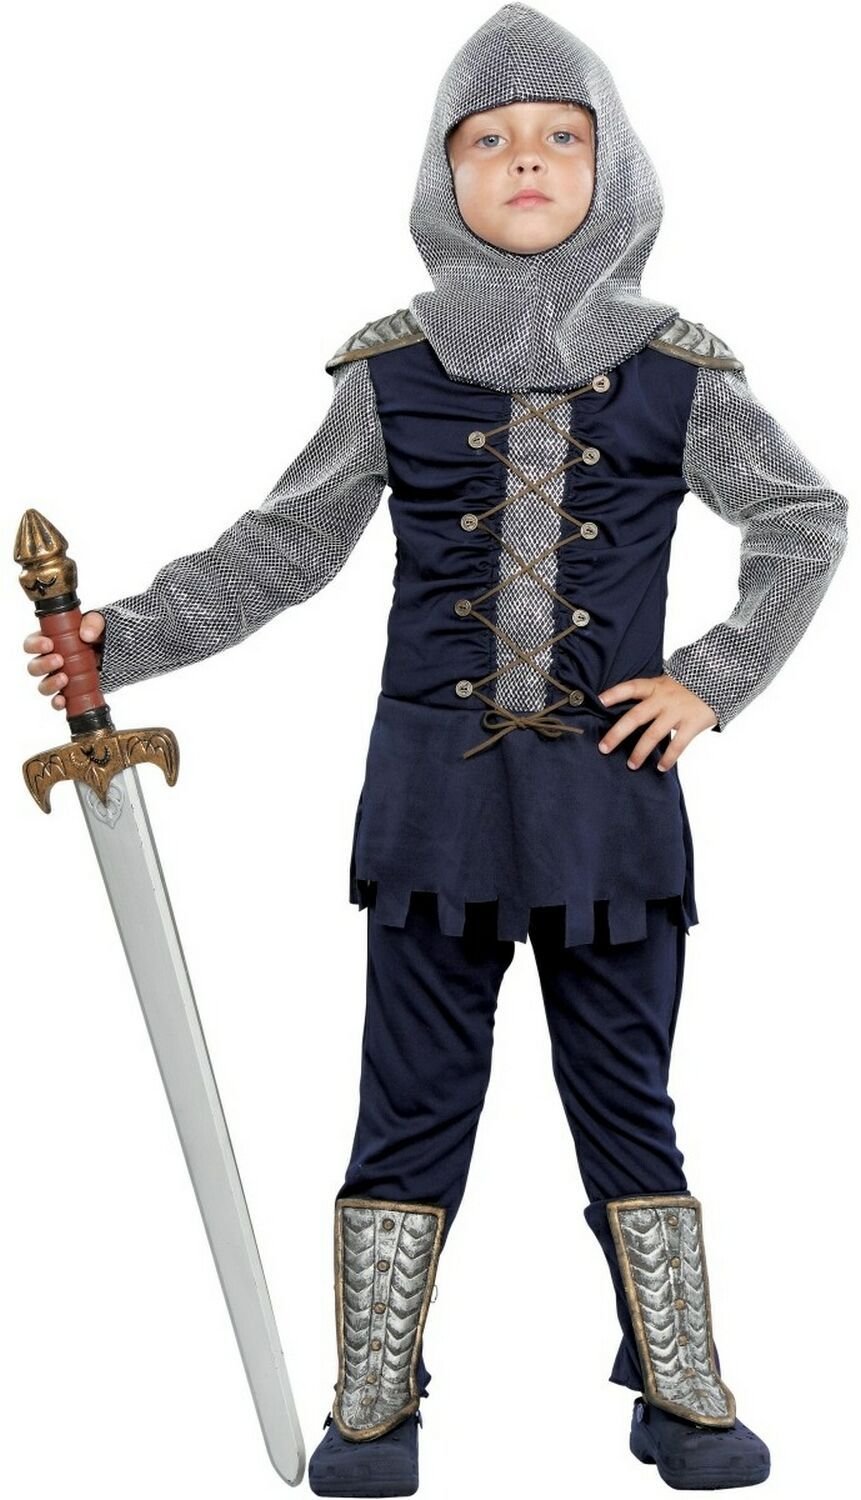 Make Homemade Medieval Costumes | Here to buy medieval ...